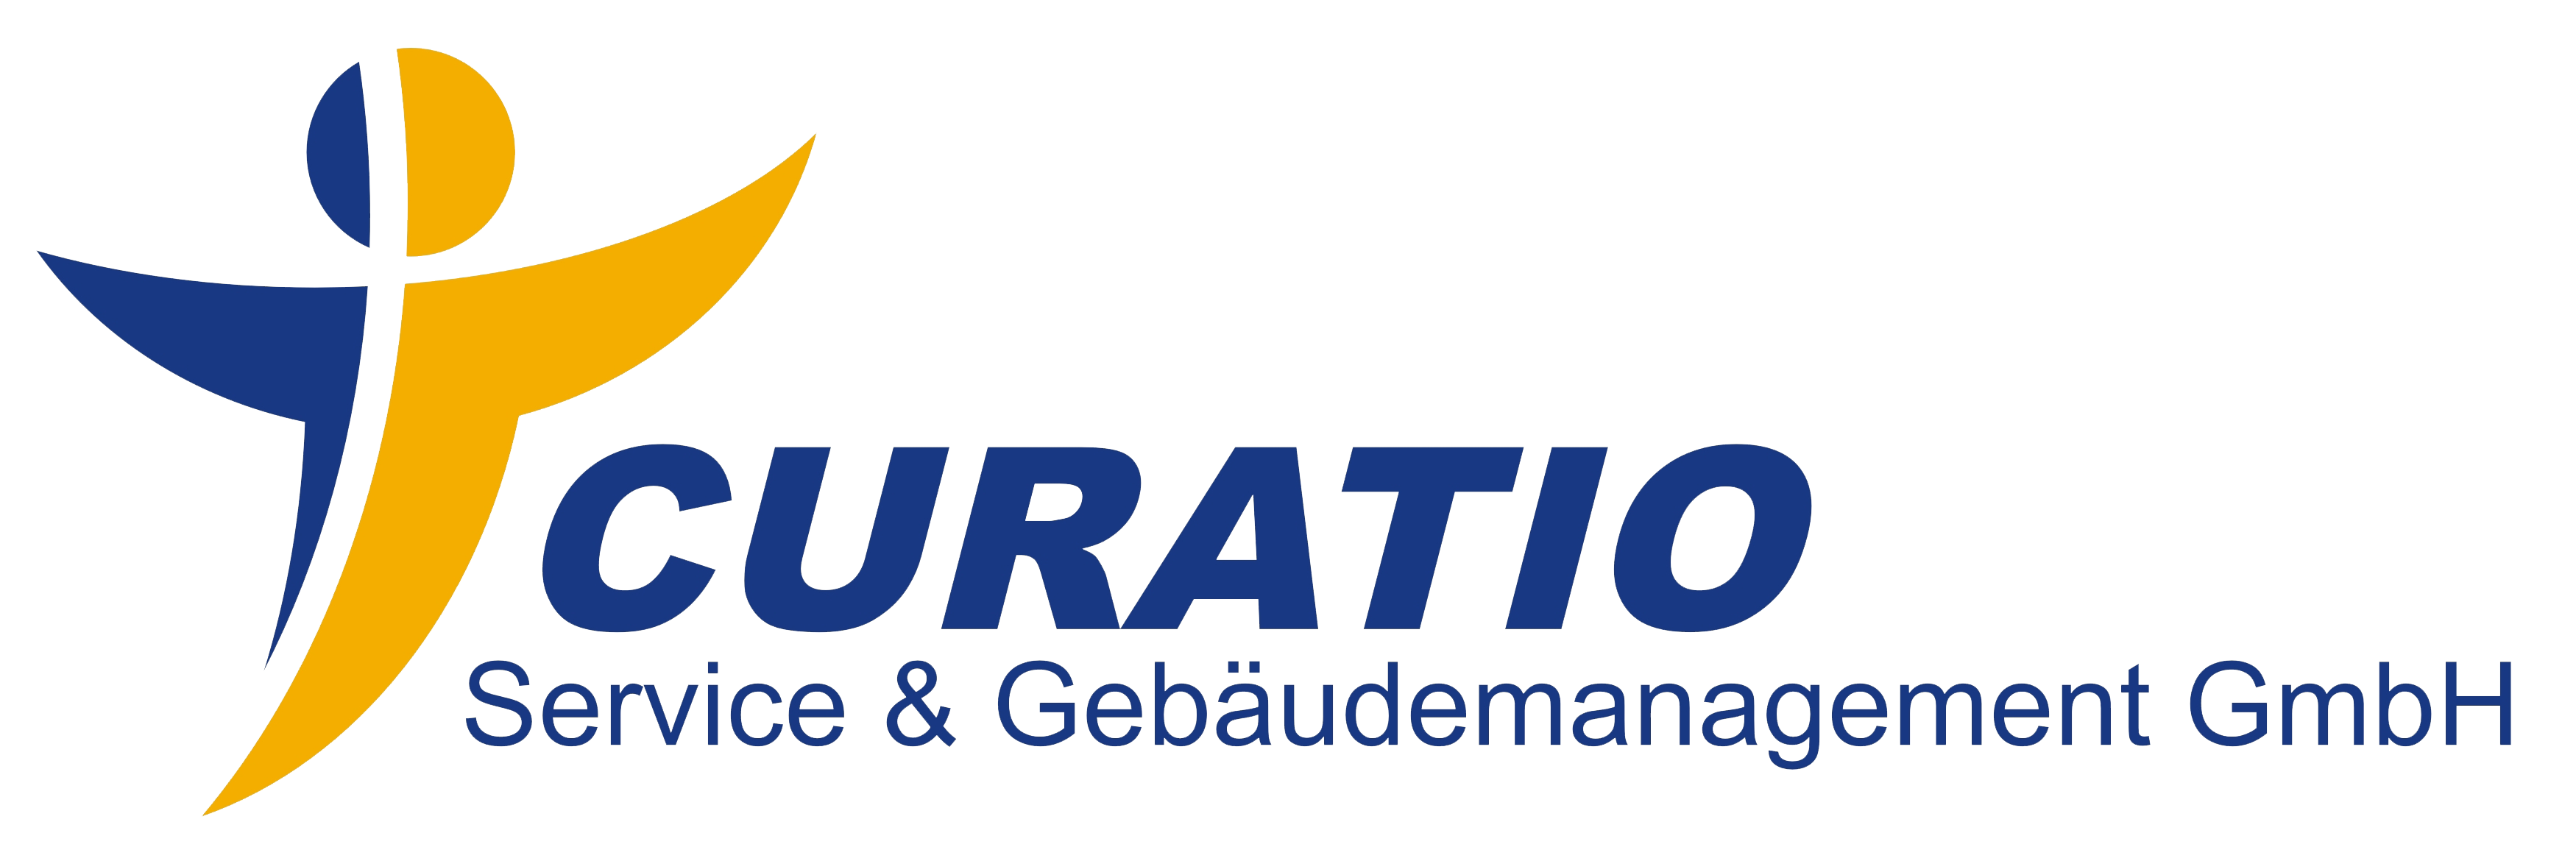 https://www.apetito-catering.de/wp-content/uploads/2018/07/curatio-logo_low.png